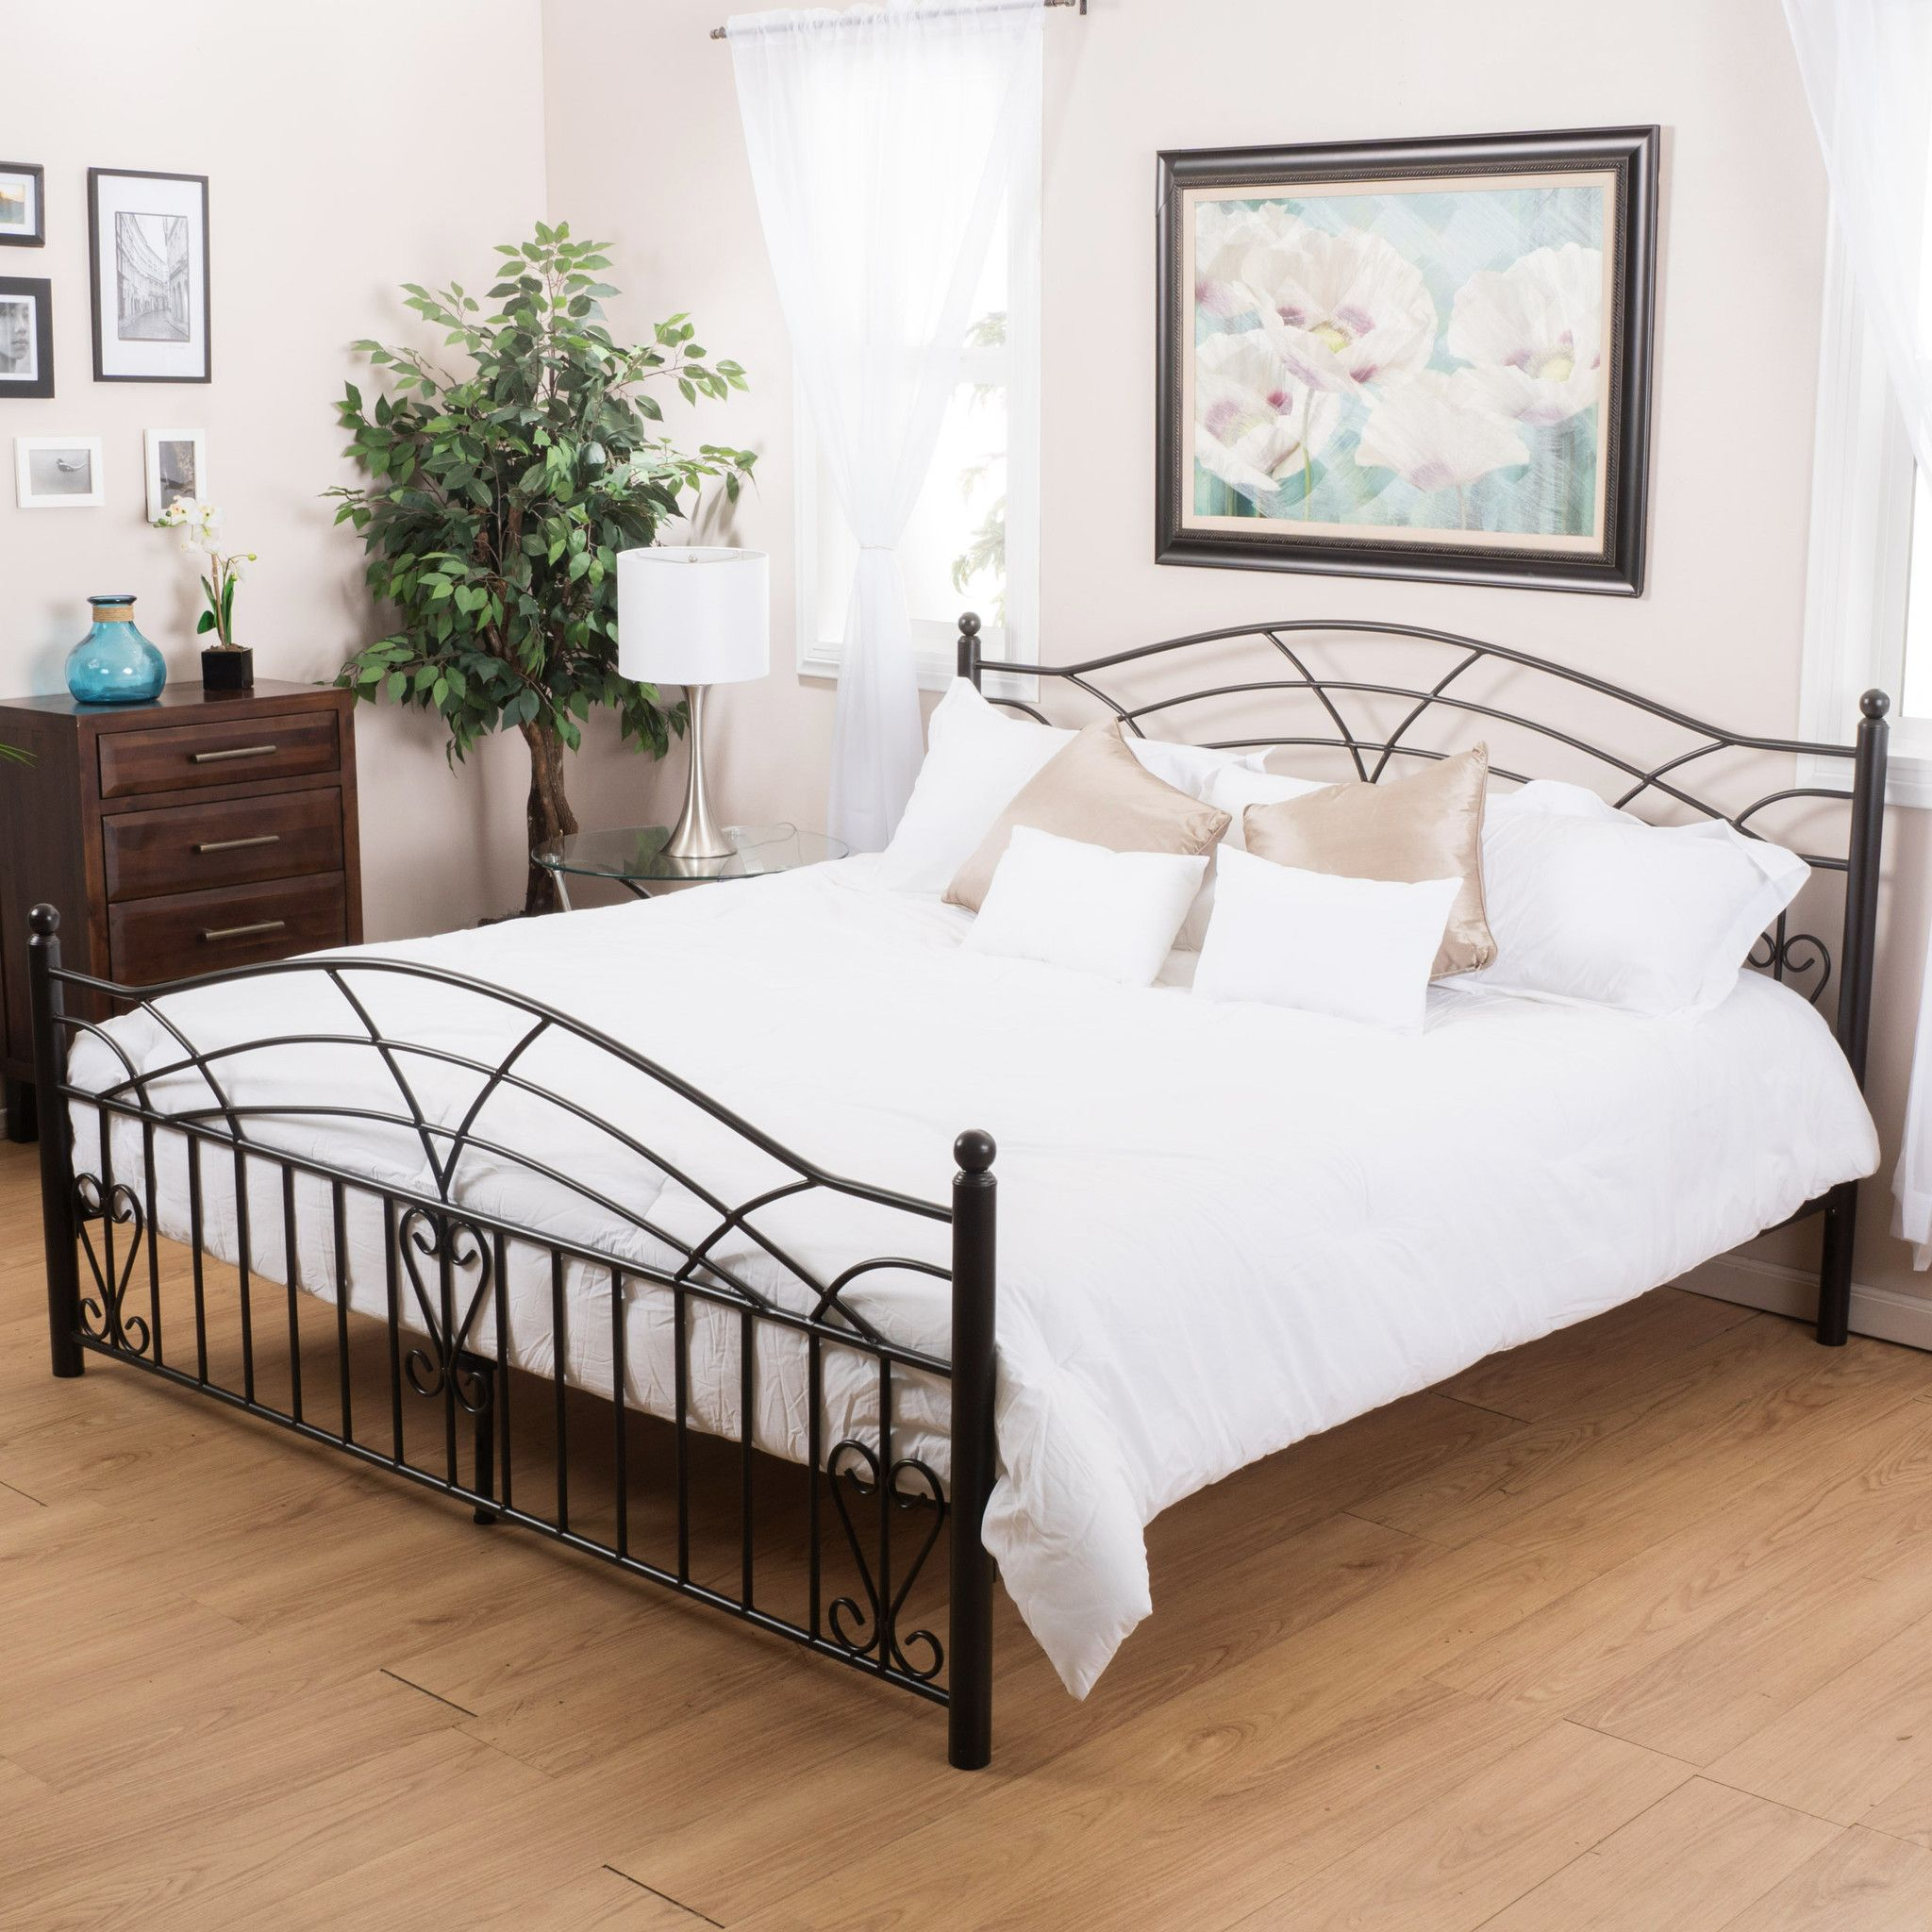 Edsel Queen Size Black Finish Iron Bed Frame | Herrería, Camas y ...